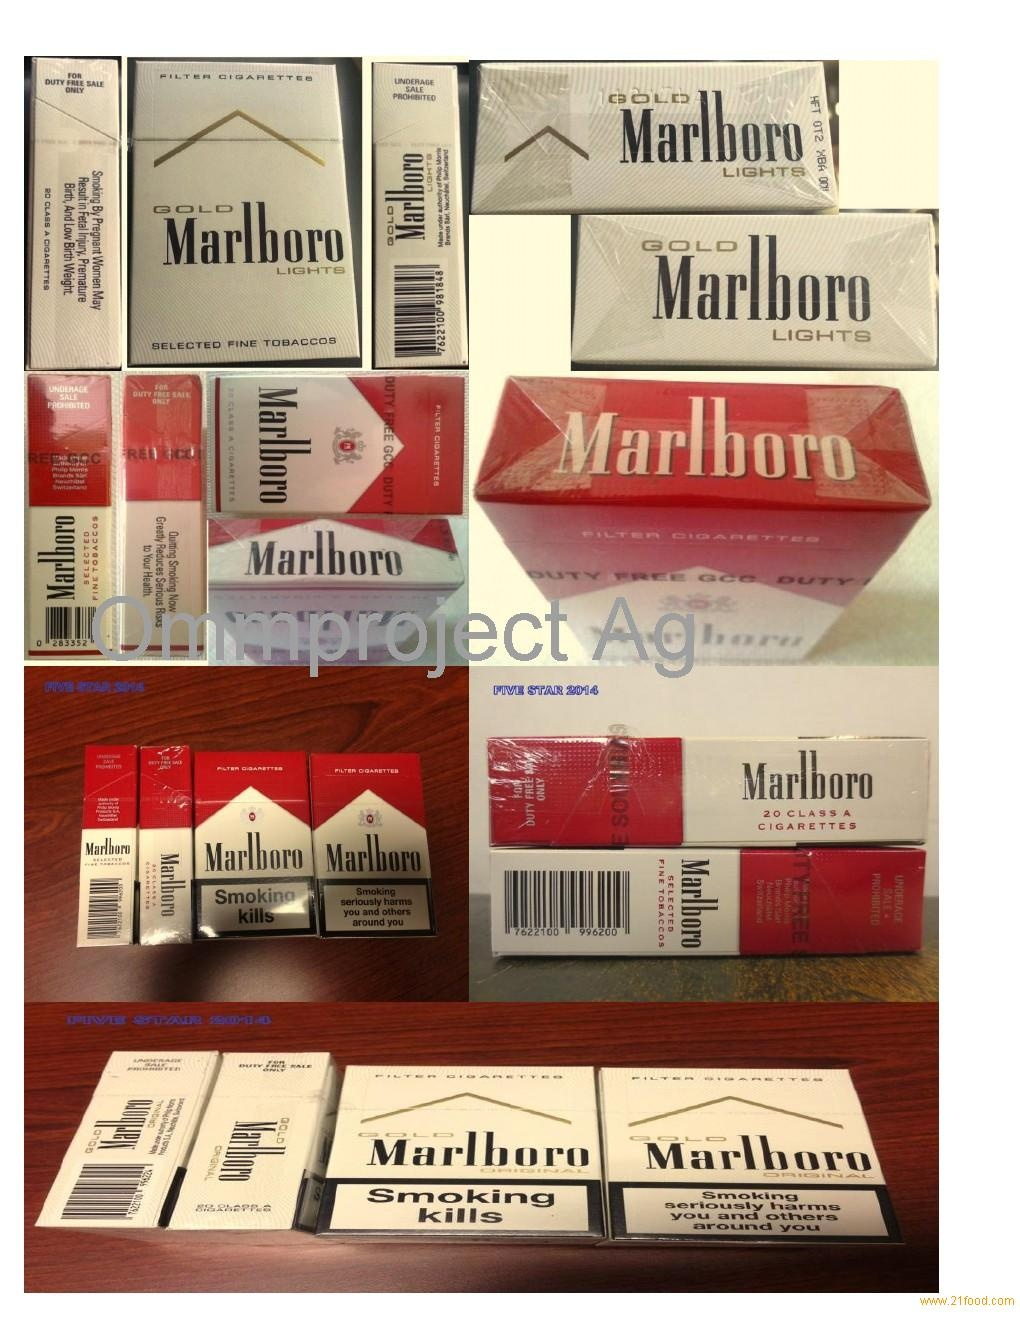 Lm Com Coupons Offers More : Add Coupons To My Store Card - Free Pack Of Cigarettes Printable Coupon